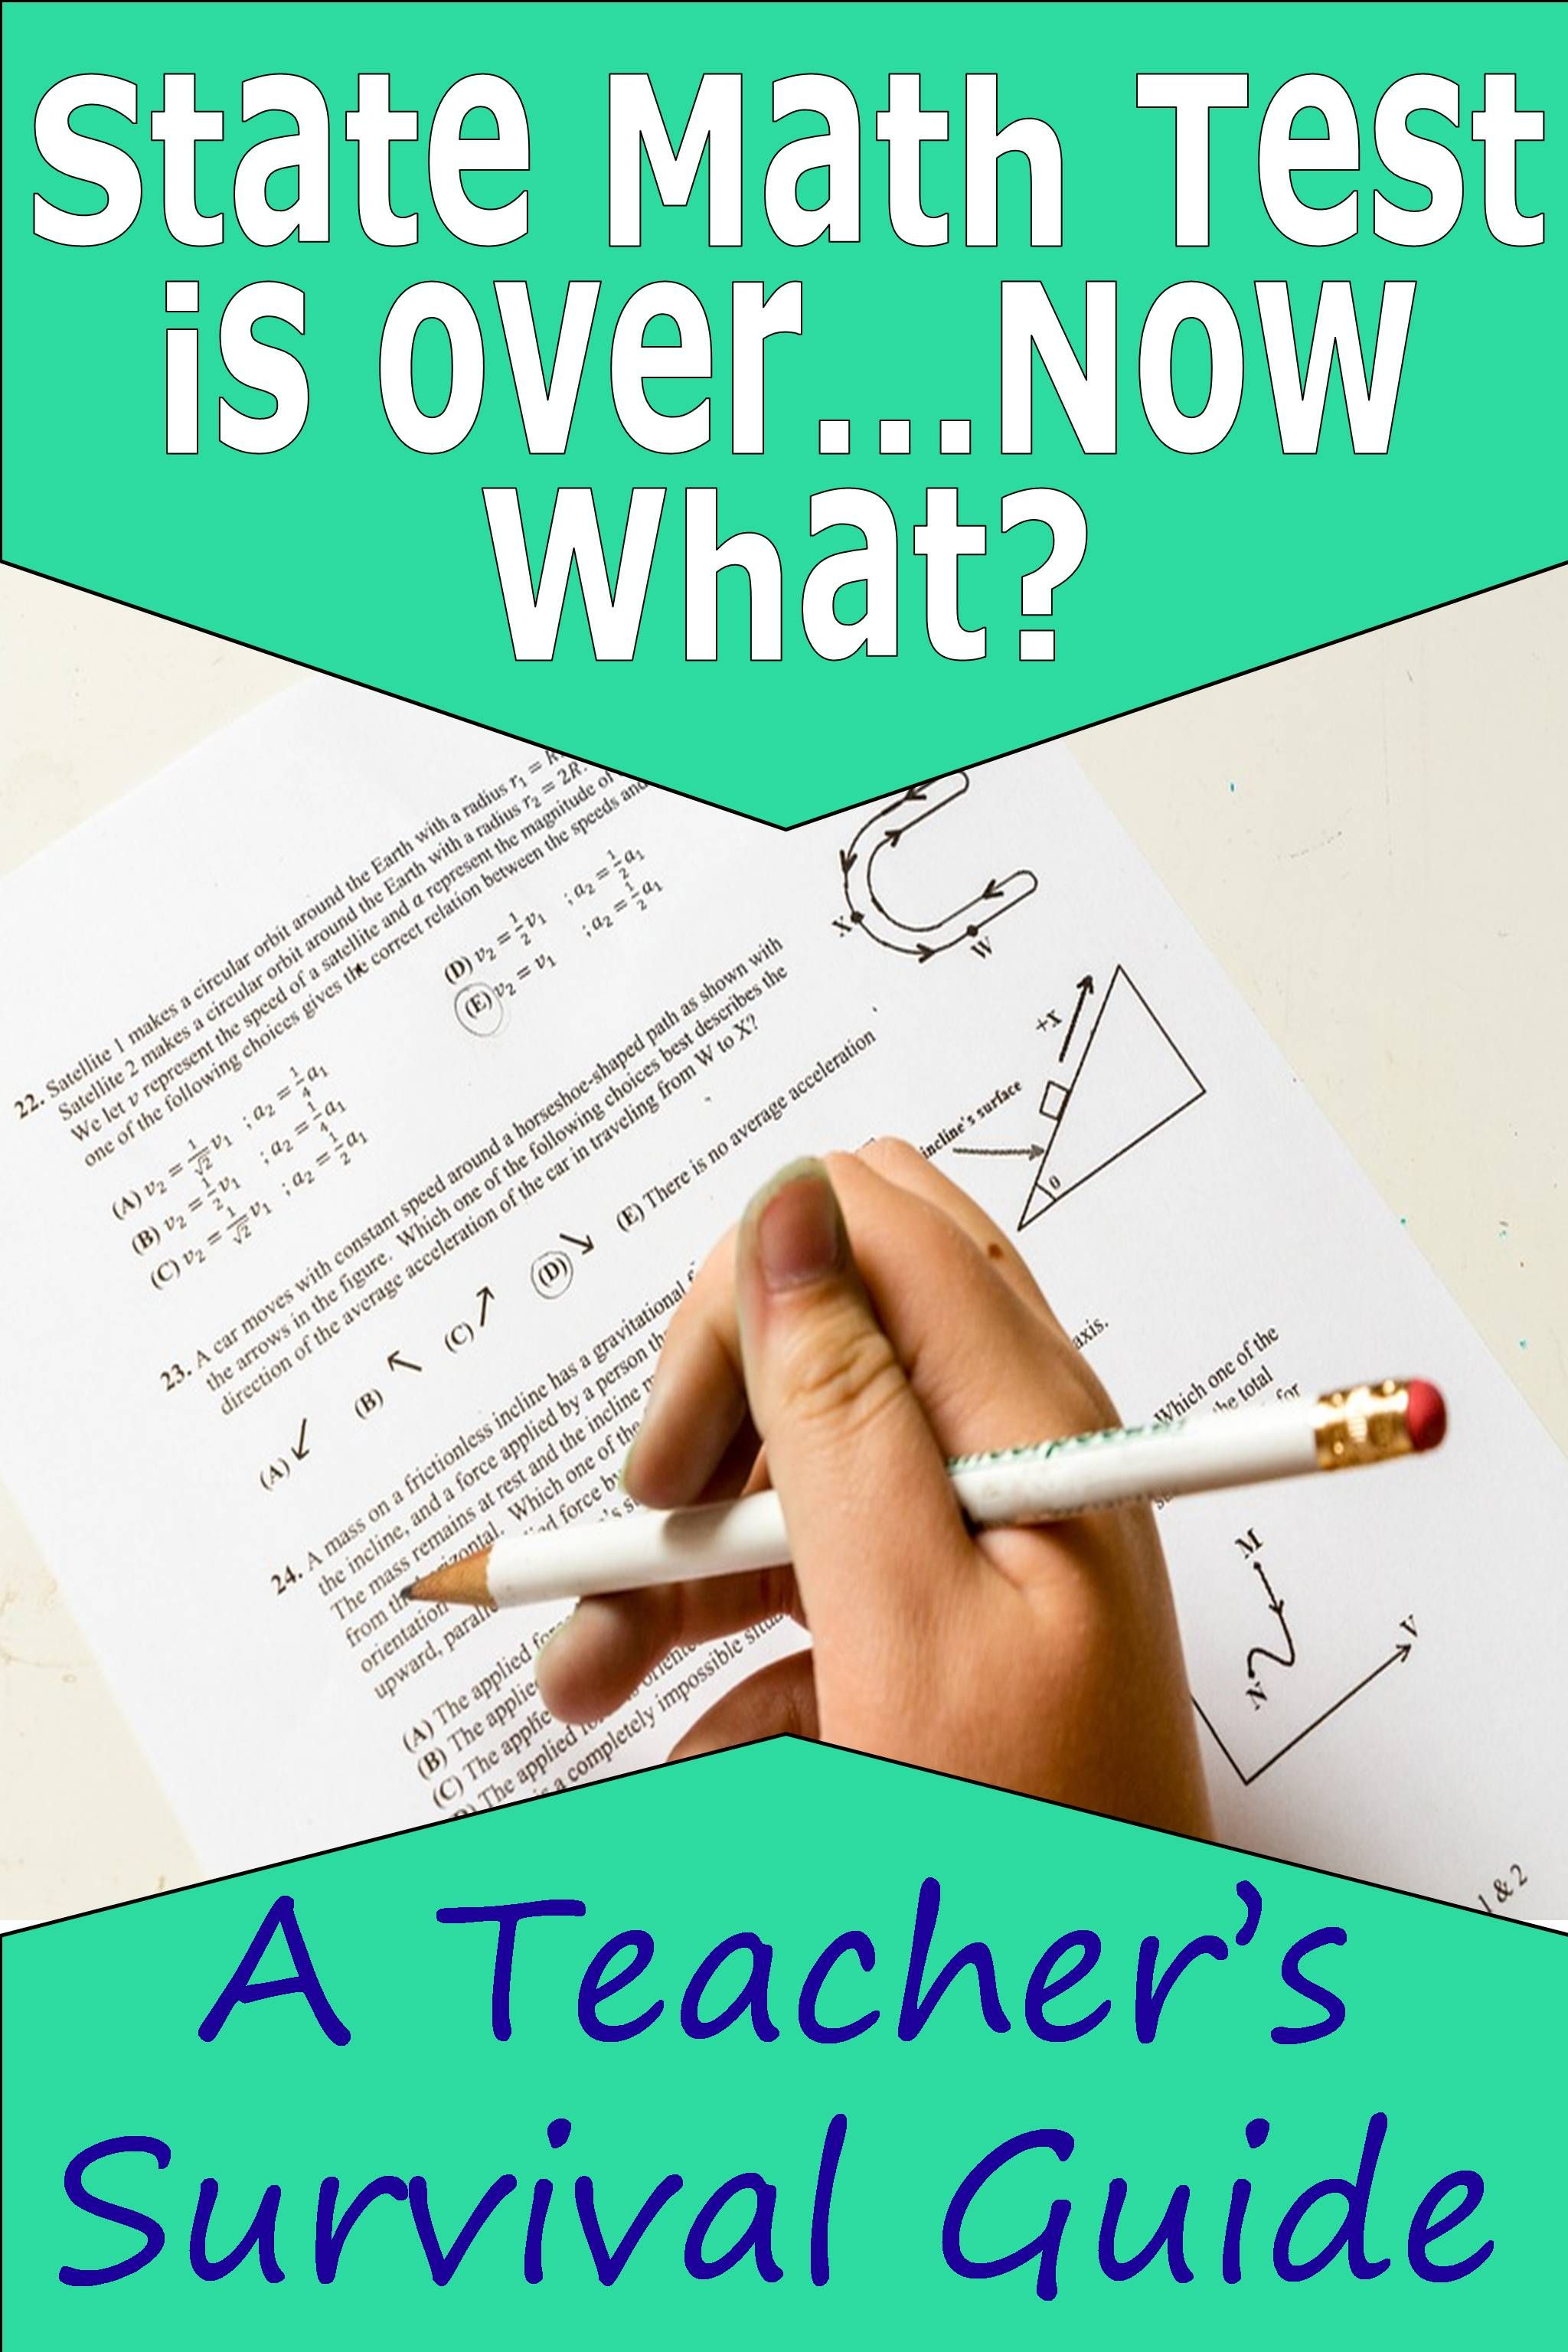 This gives some great strategies and ideas for activities